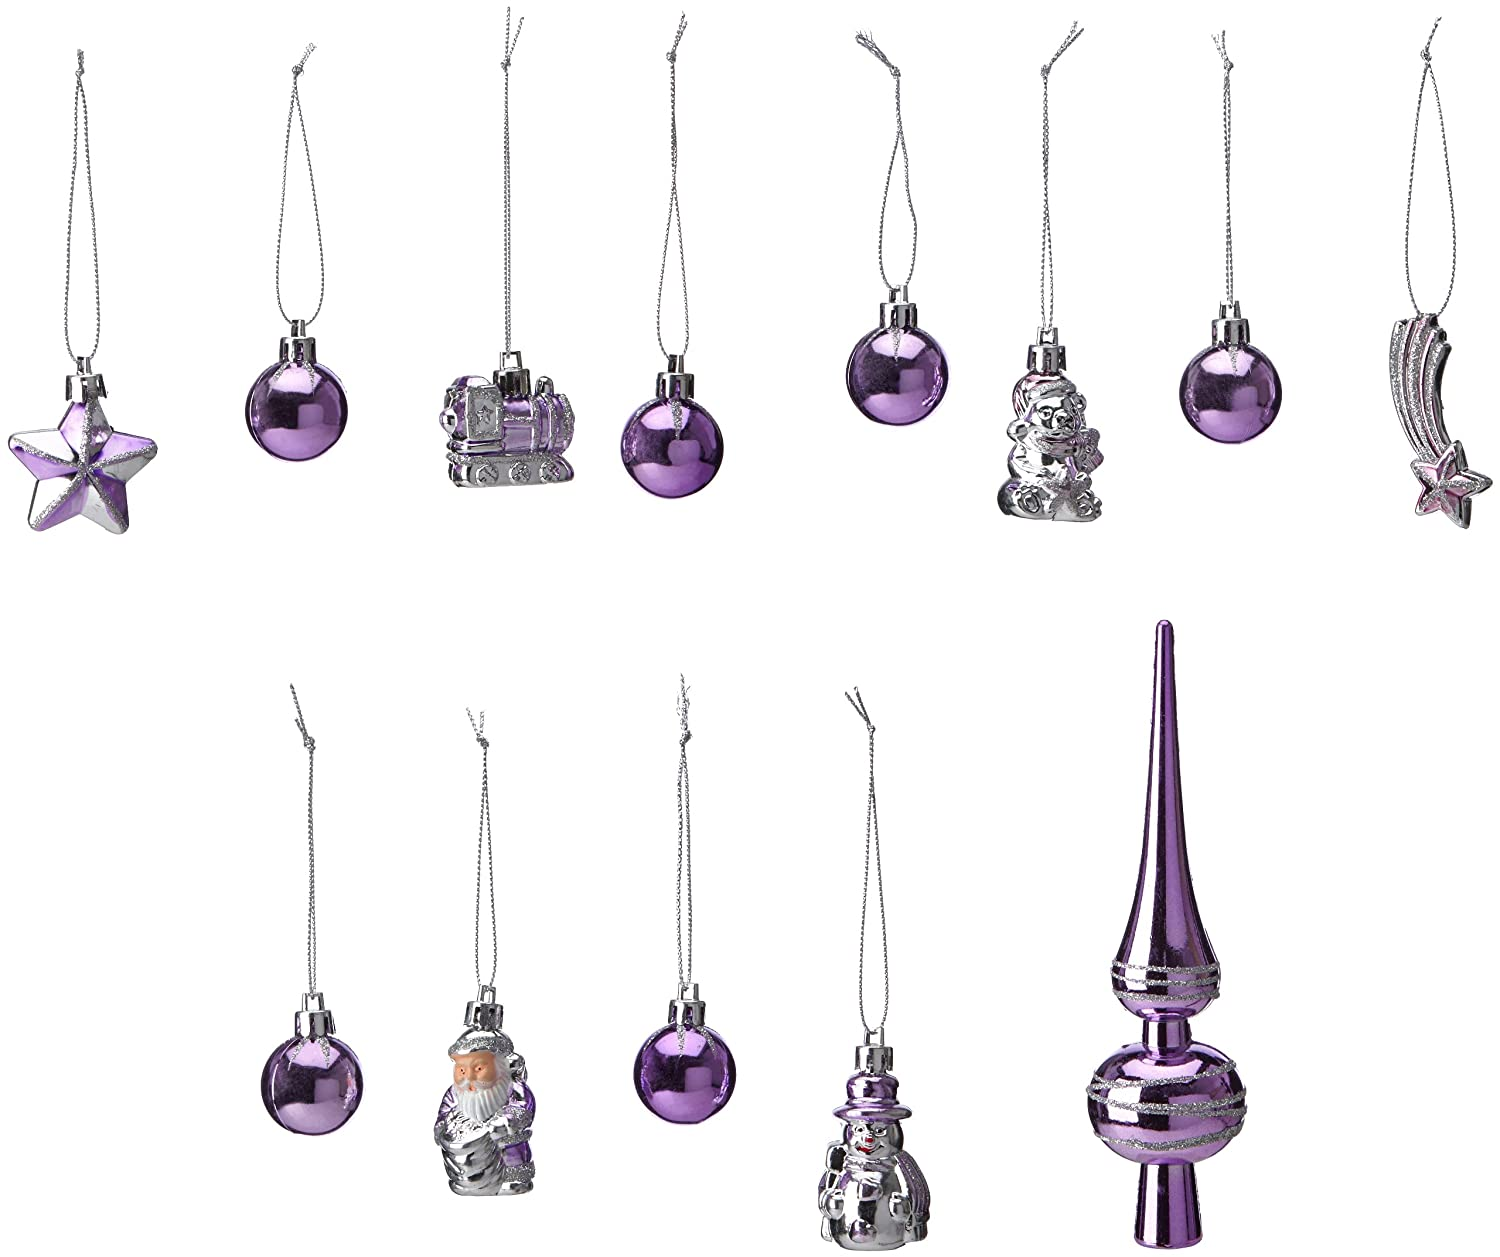 Brauns-Heitmann 83100 13-Piece Assorted Christmas Tree Decoration Set with Tree Top Cone 3.5 cm to 14.5 cm Silver and Purple